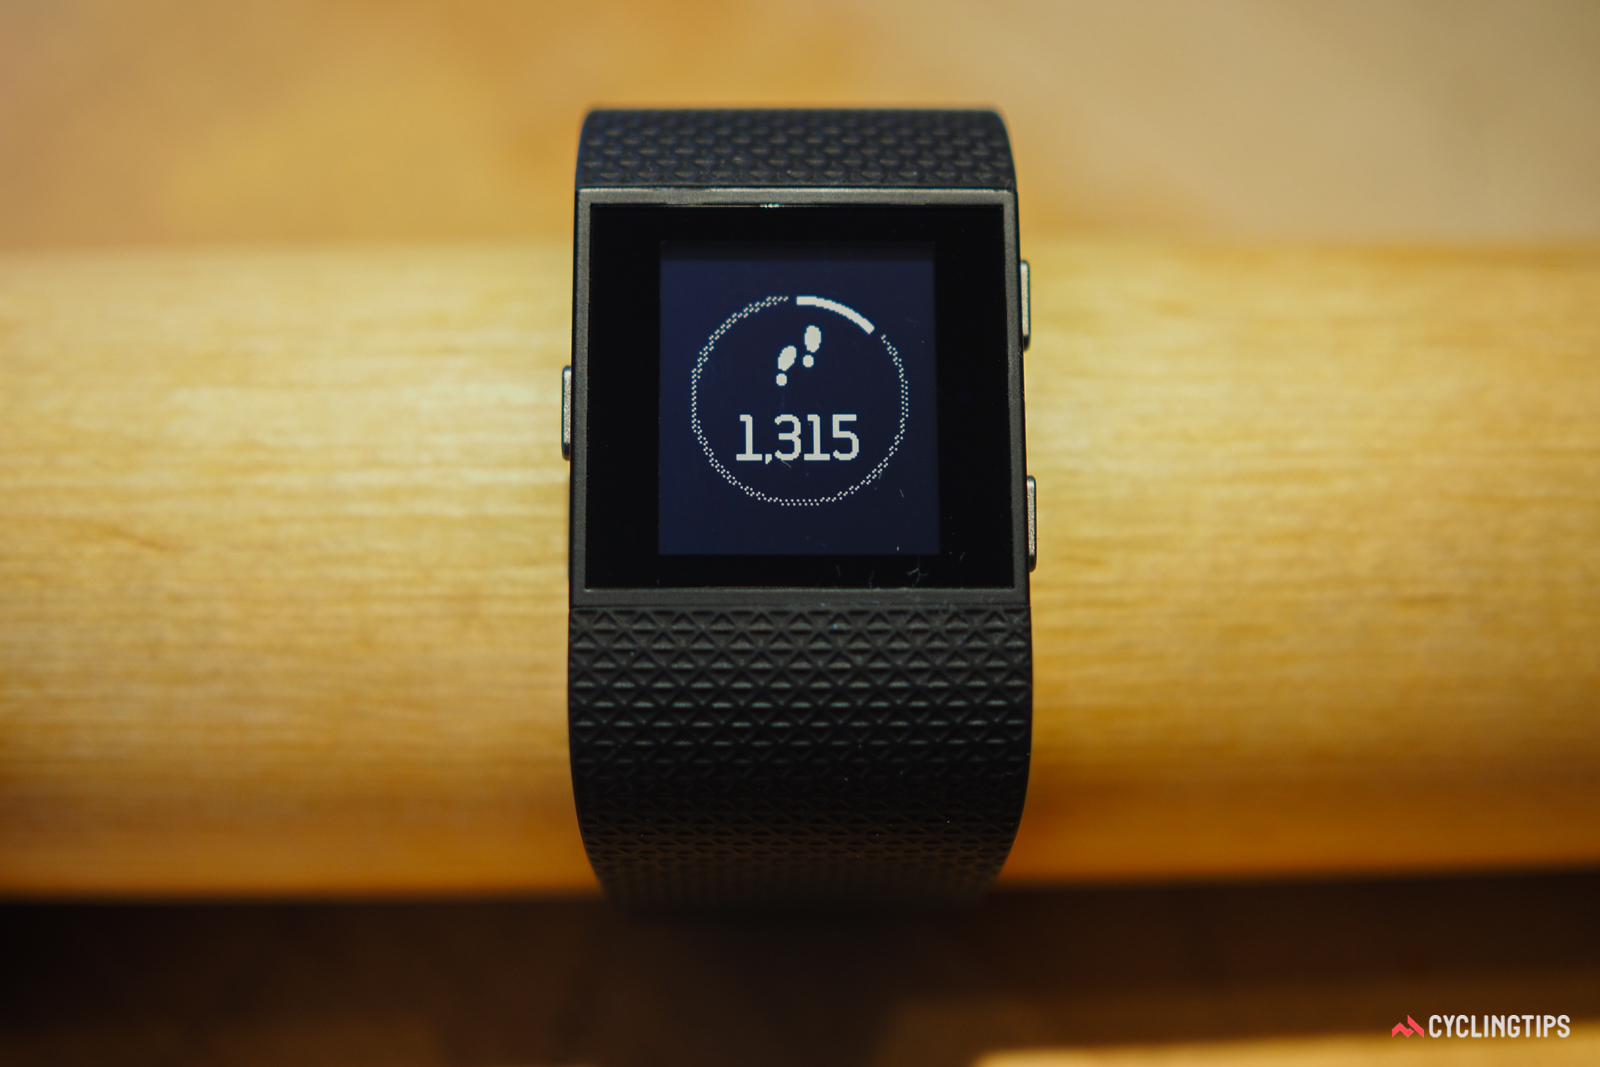 A simple swipe left or right brings up the other main screens on the Fitbit Surge.